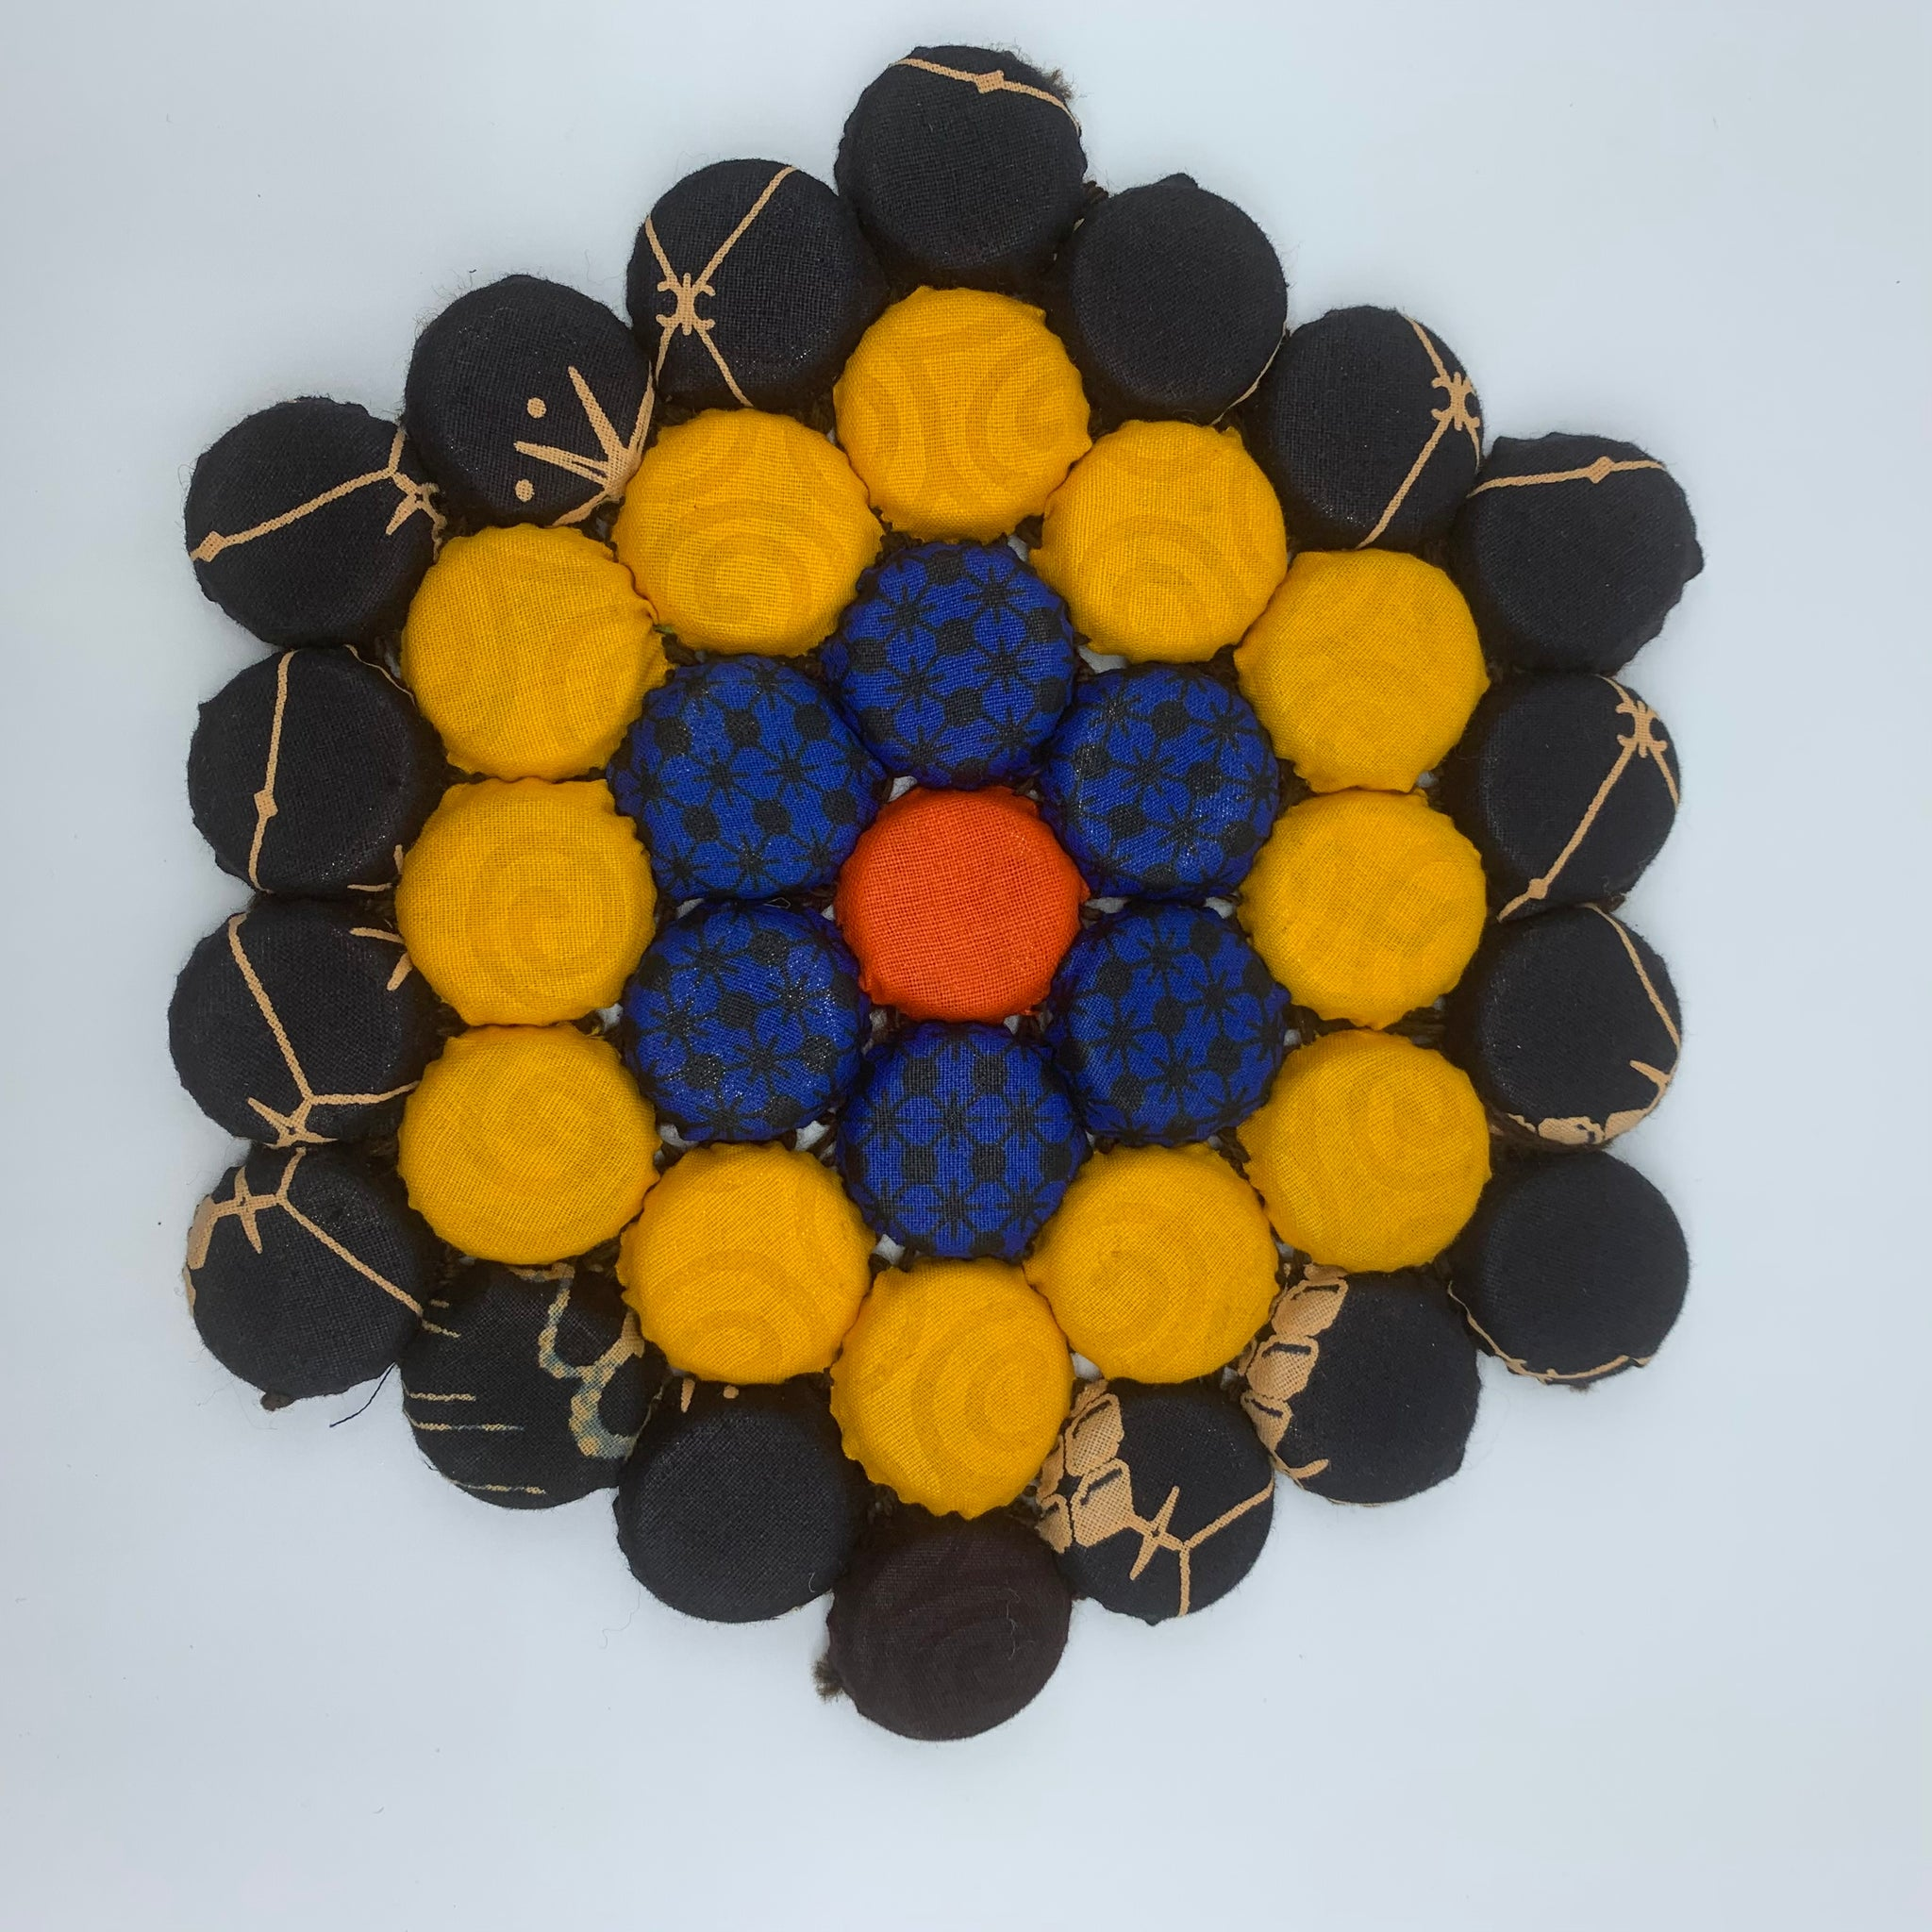 Bottle Caps Table Decoration- Flower Multi Colour Black Variation